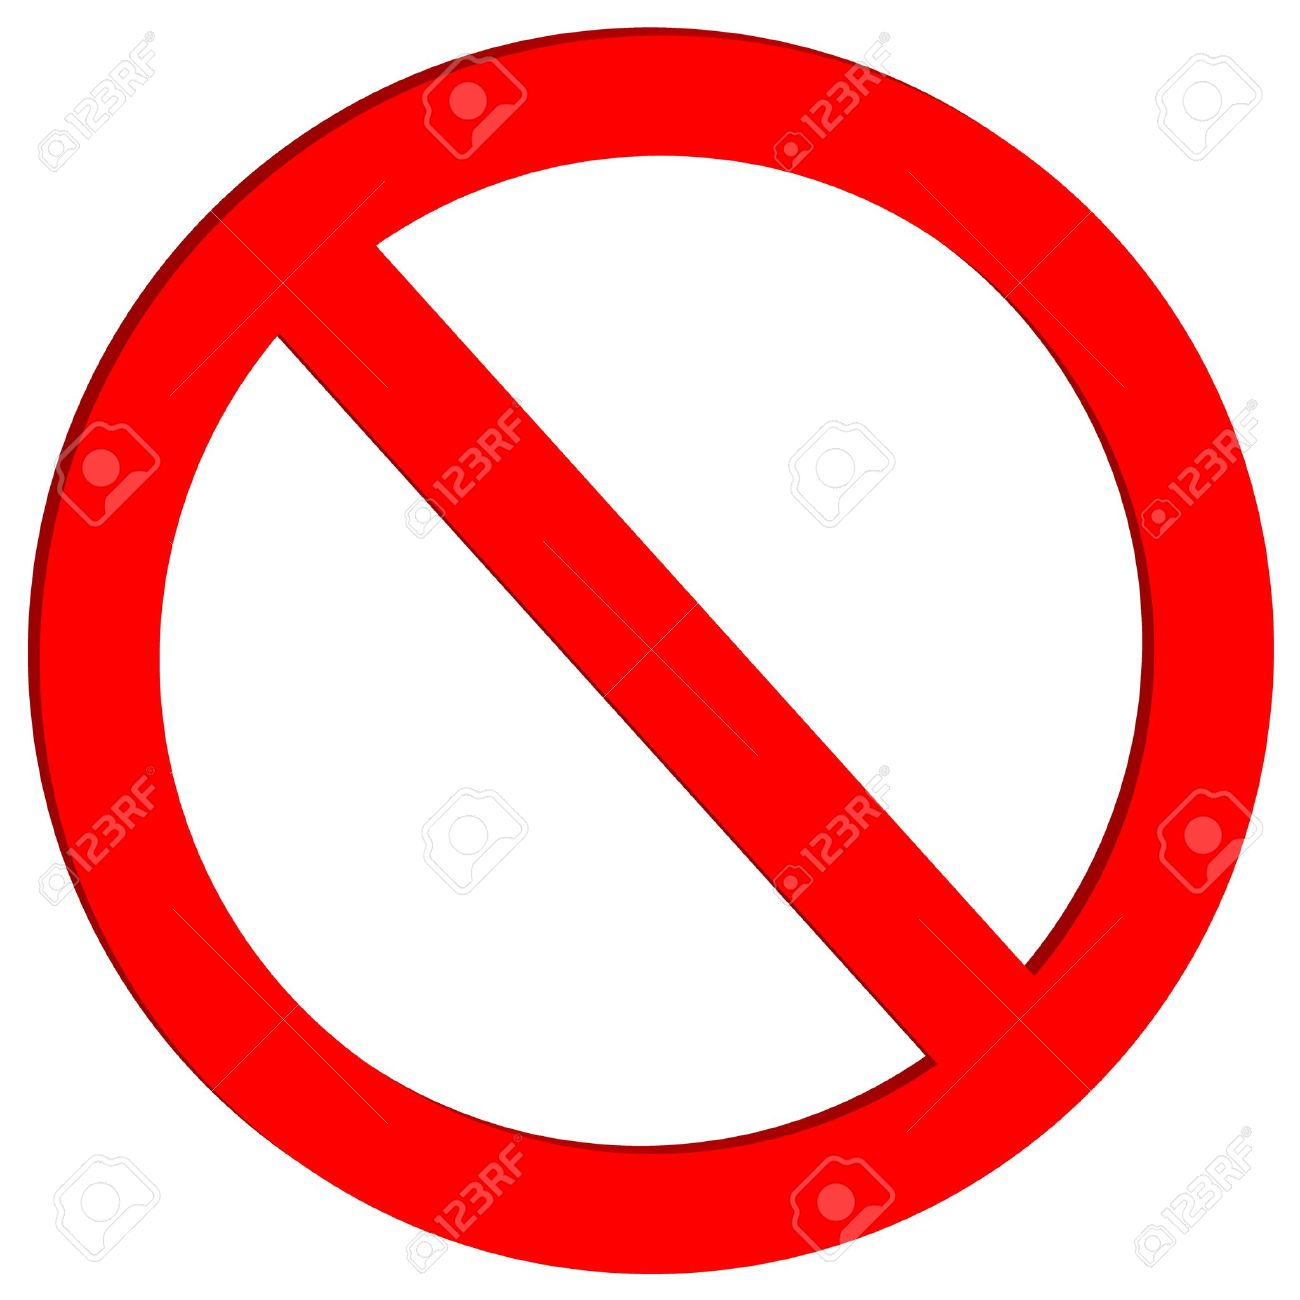 Not allowed sign on white background - vector - 11236973